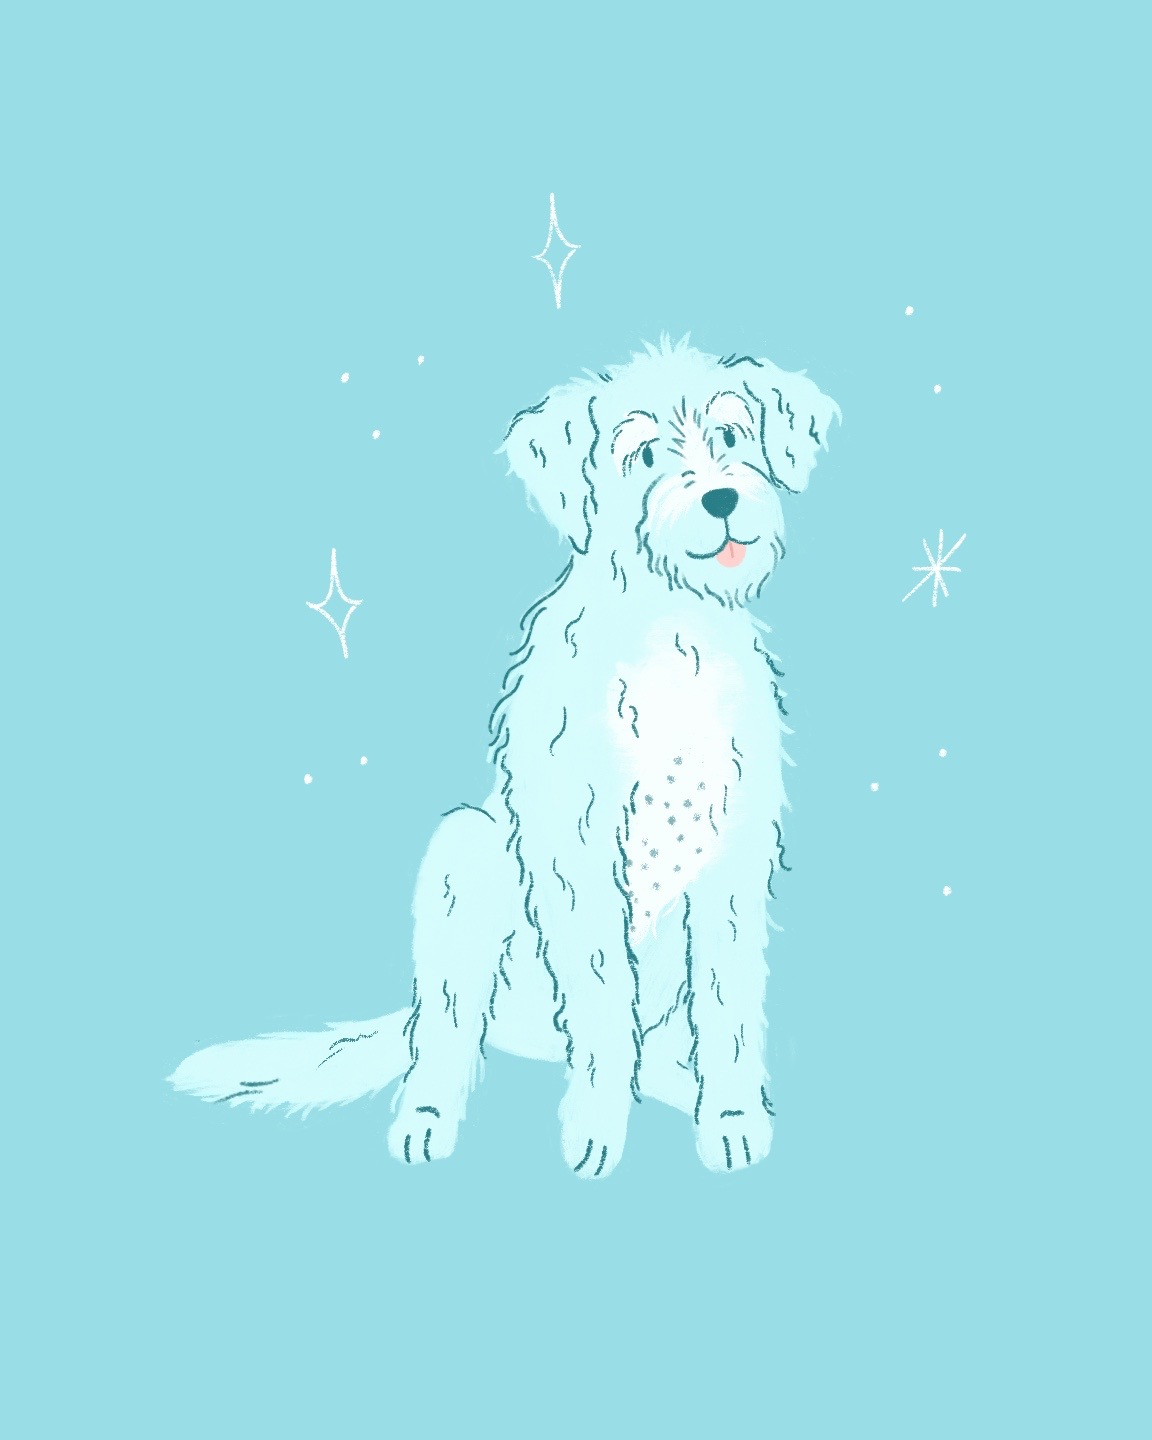 An illustration of a blue dog sitting